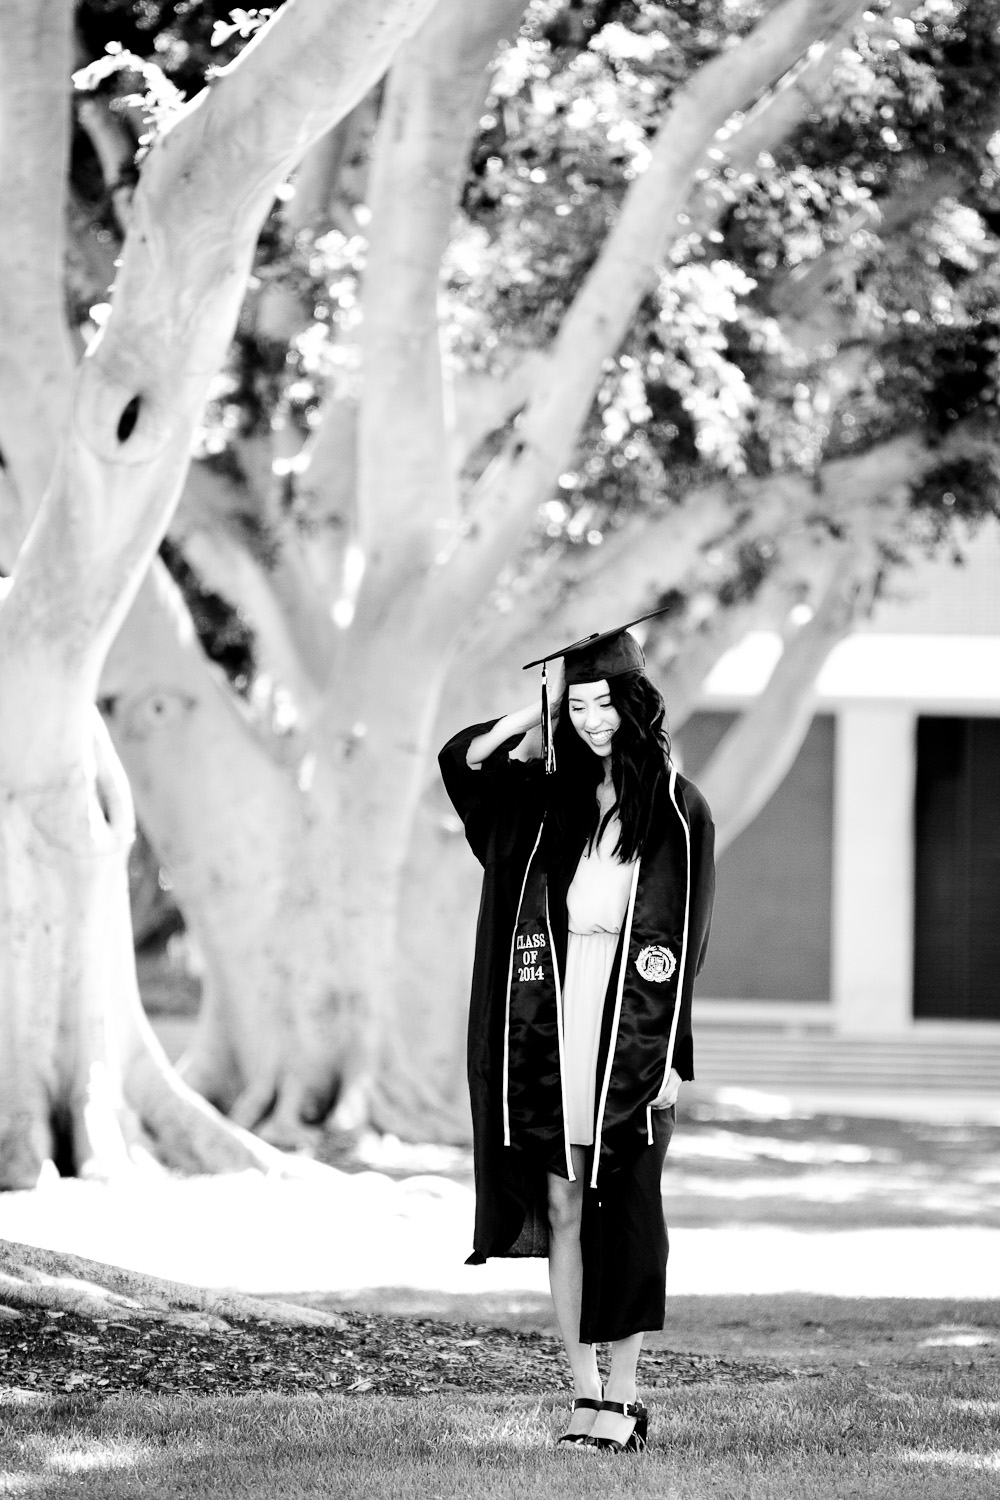 Bryan-Miraflor-Photography-Chelsea-Chow-Grad-Pictures-CSULB-20140430-0038.jpg